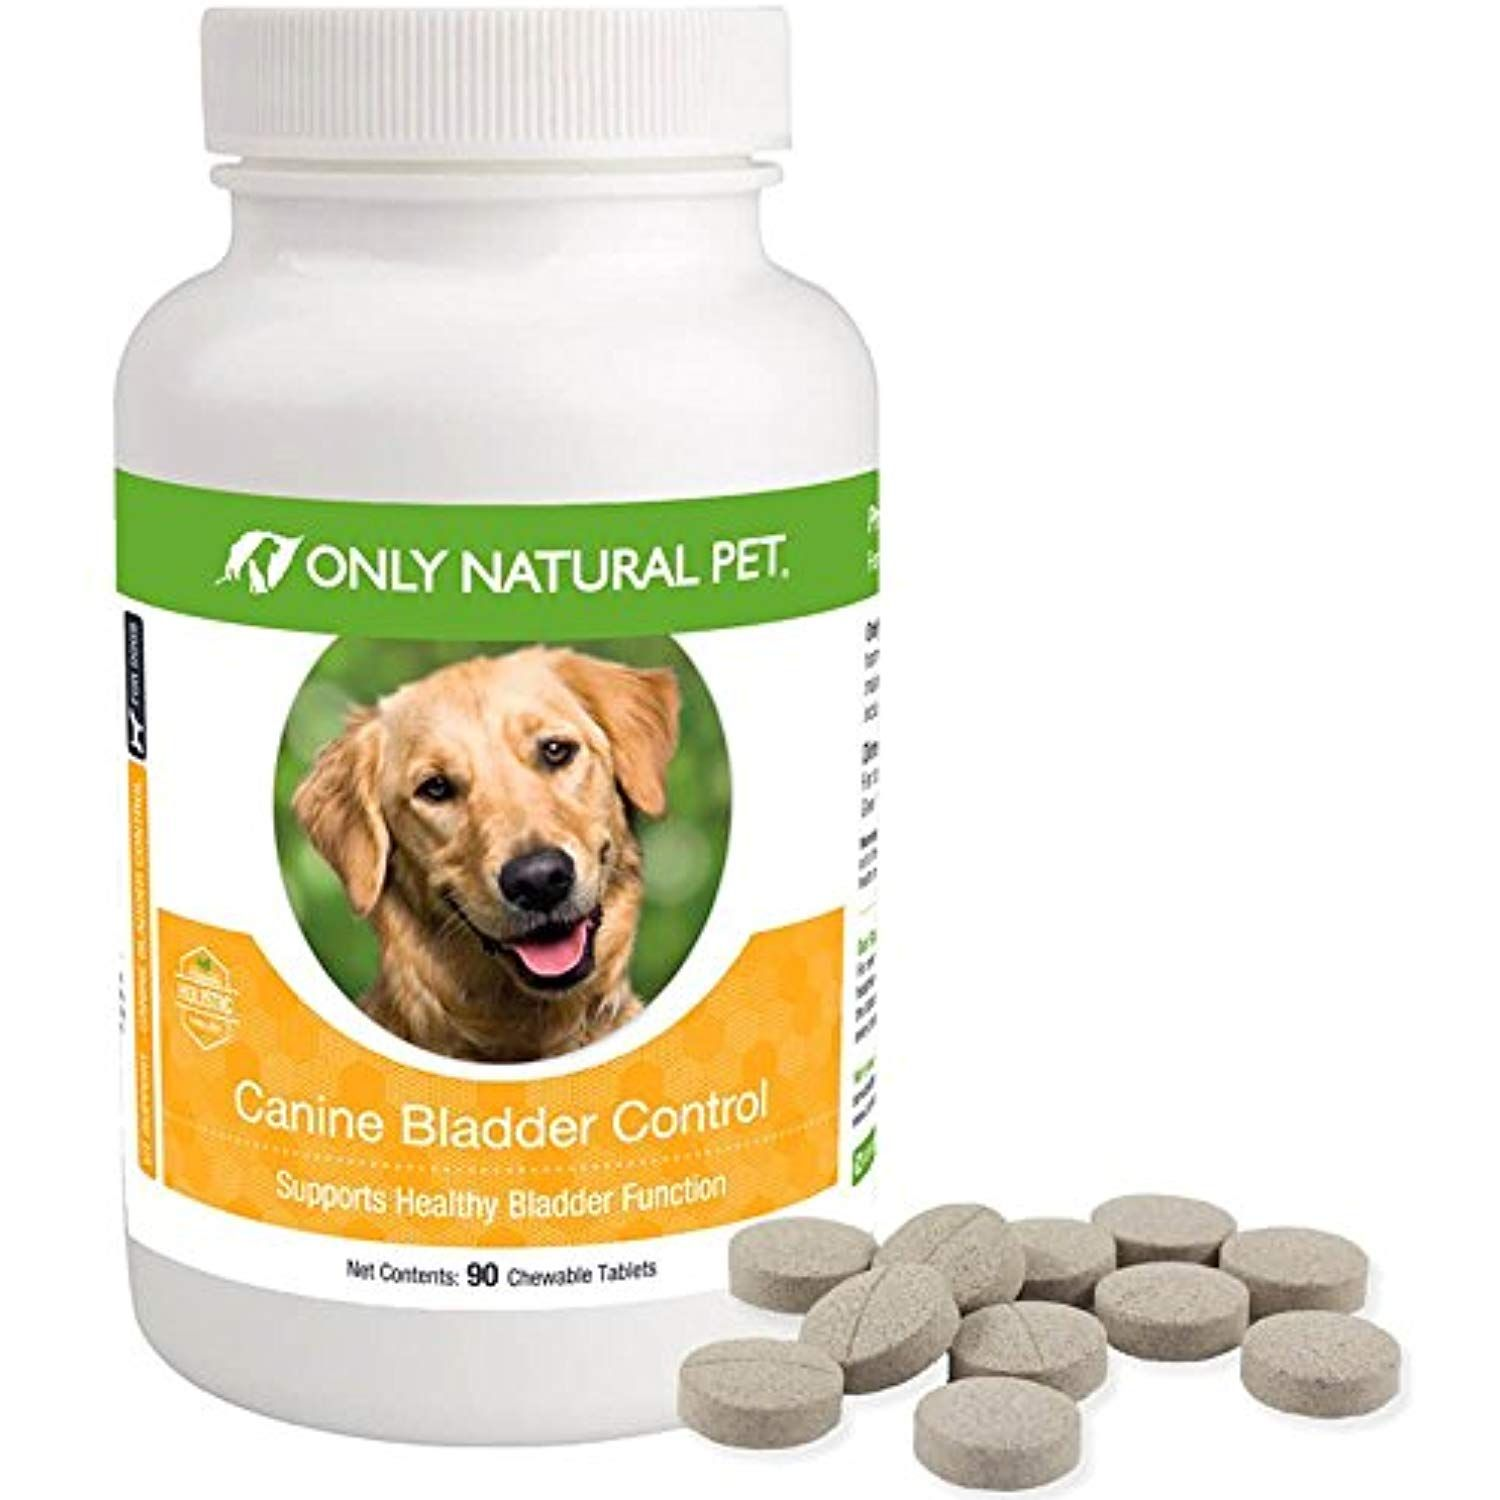 Only natural pet canine bladder control for dogs helps